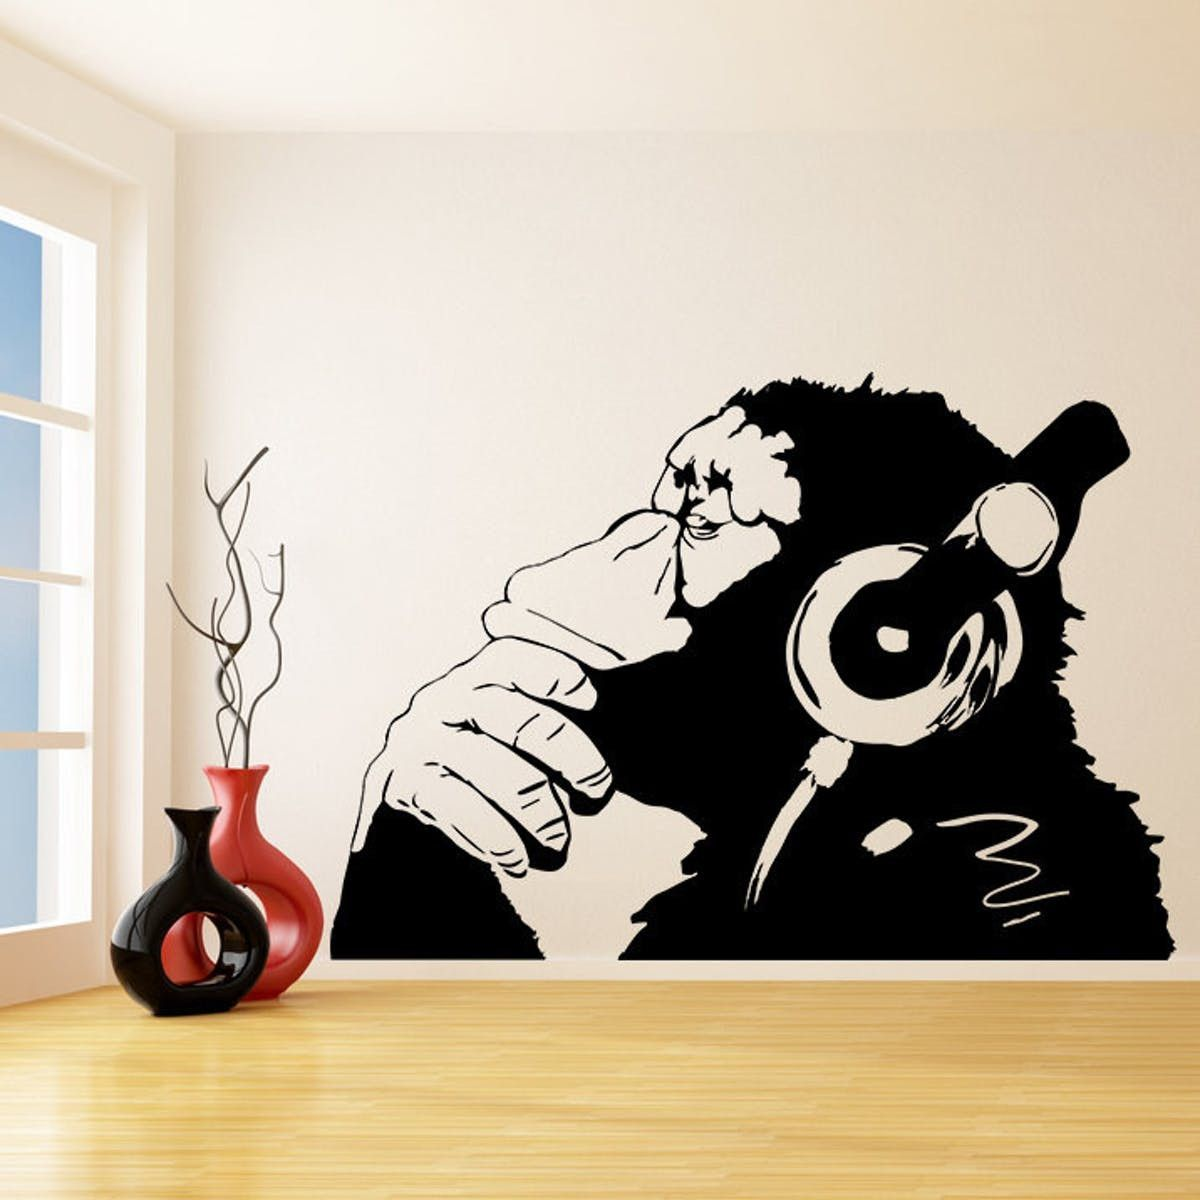 Banksy monkey wall decal music wall decals pinterest banksy banksy monkey wall decal amipublicfo Gallery